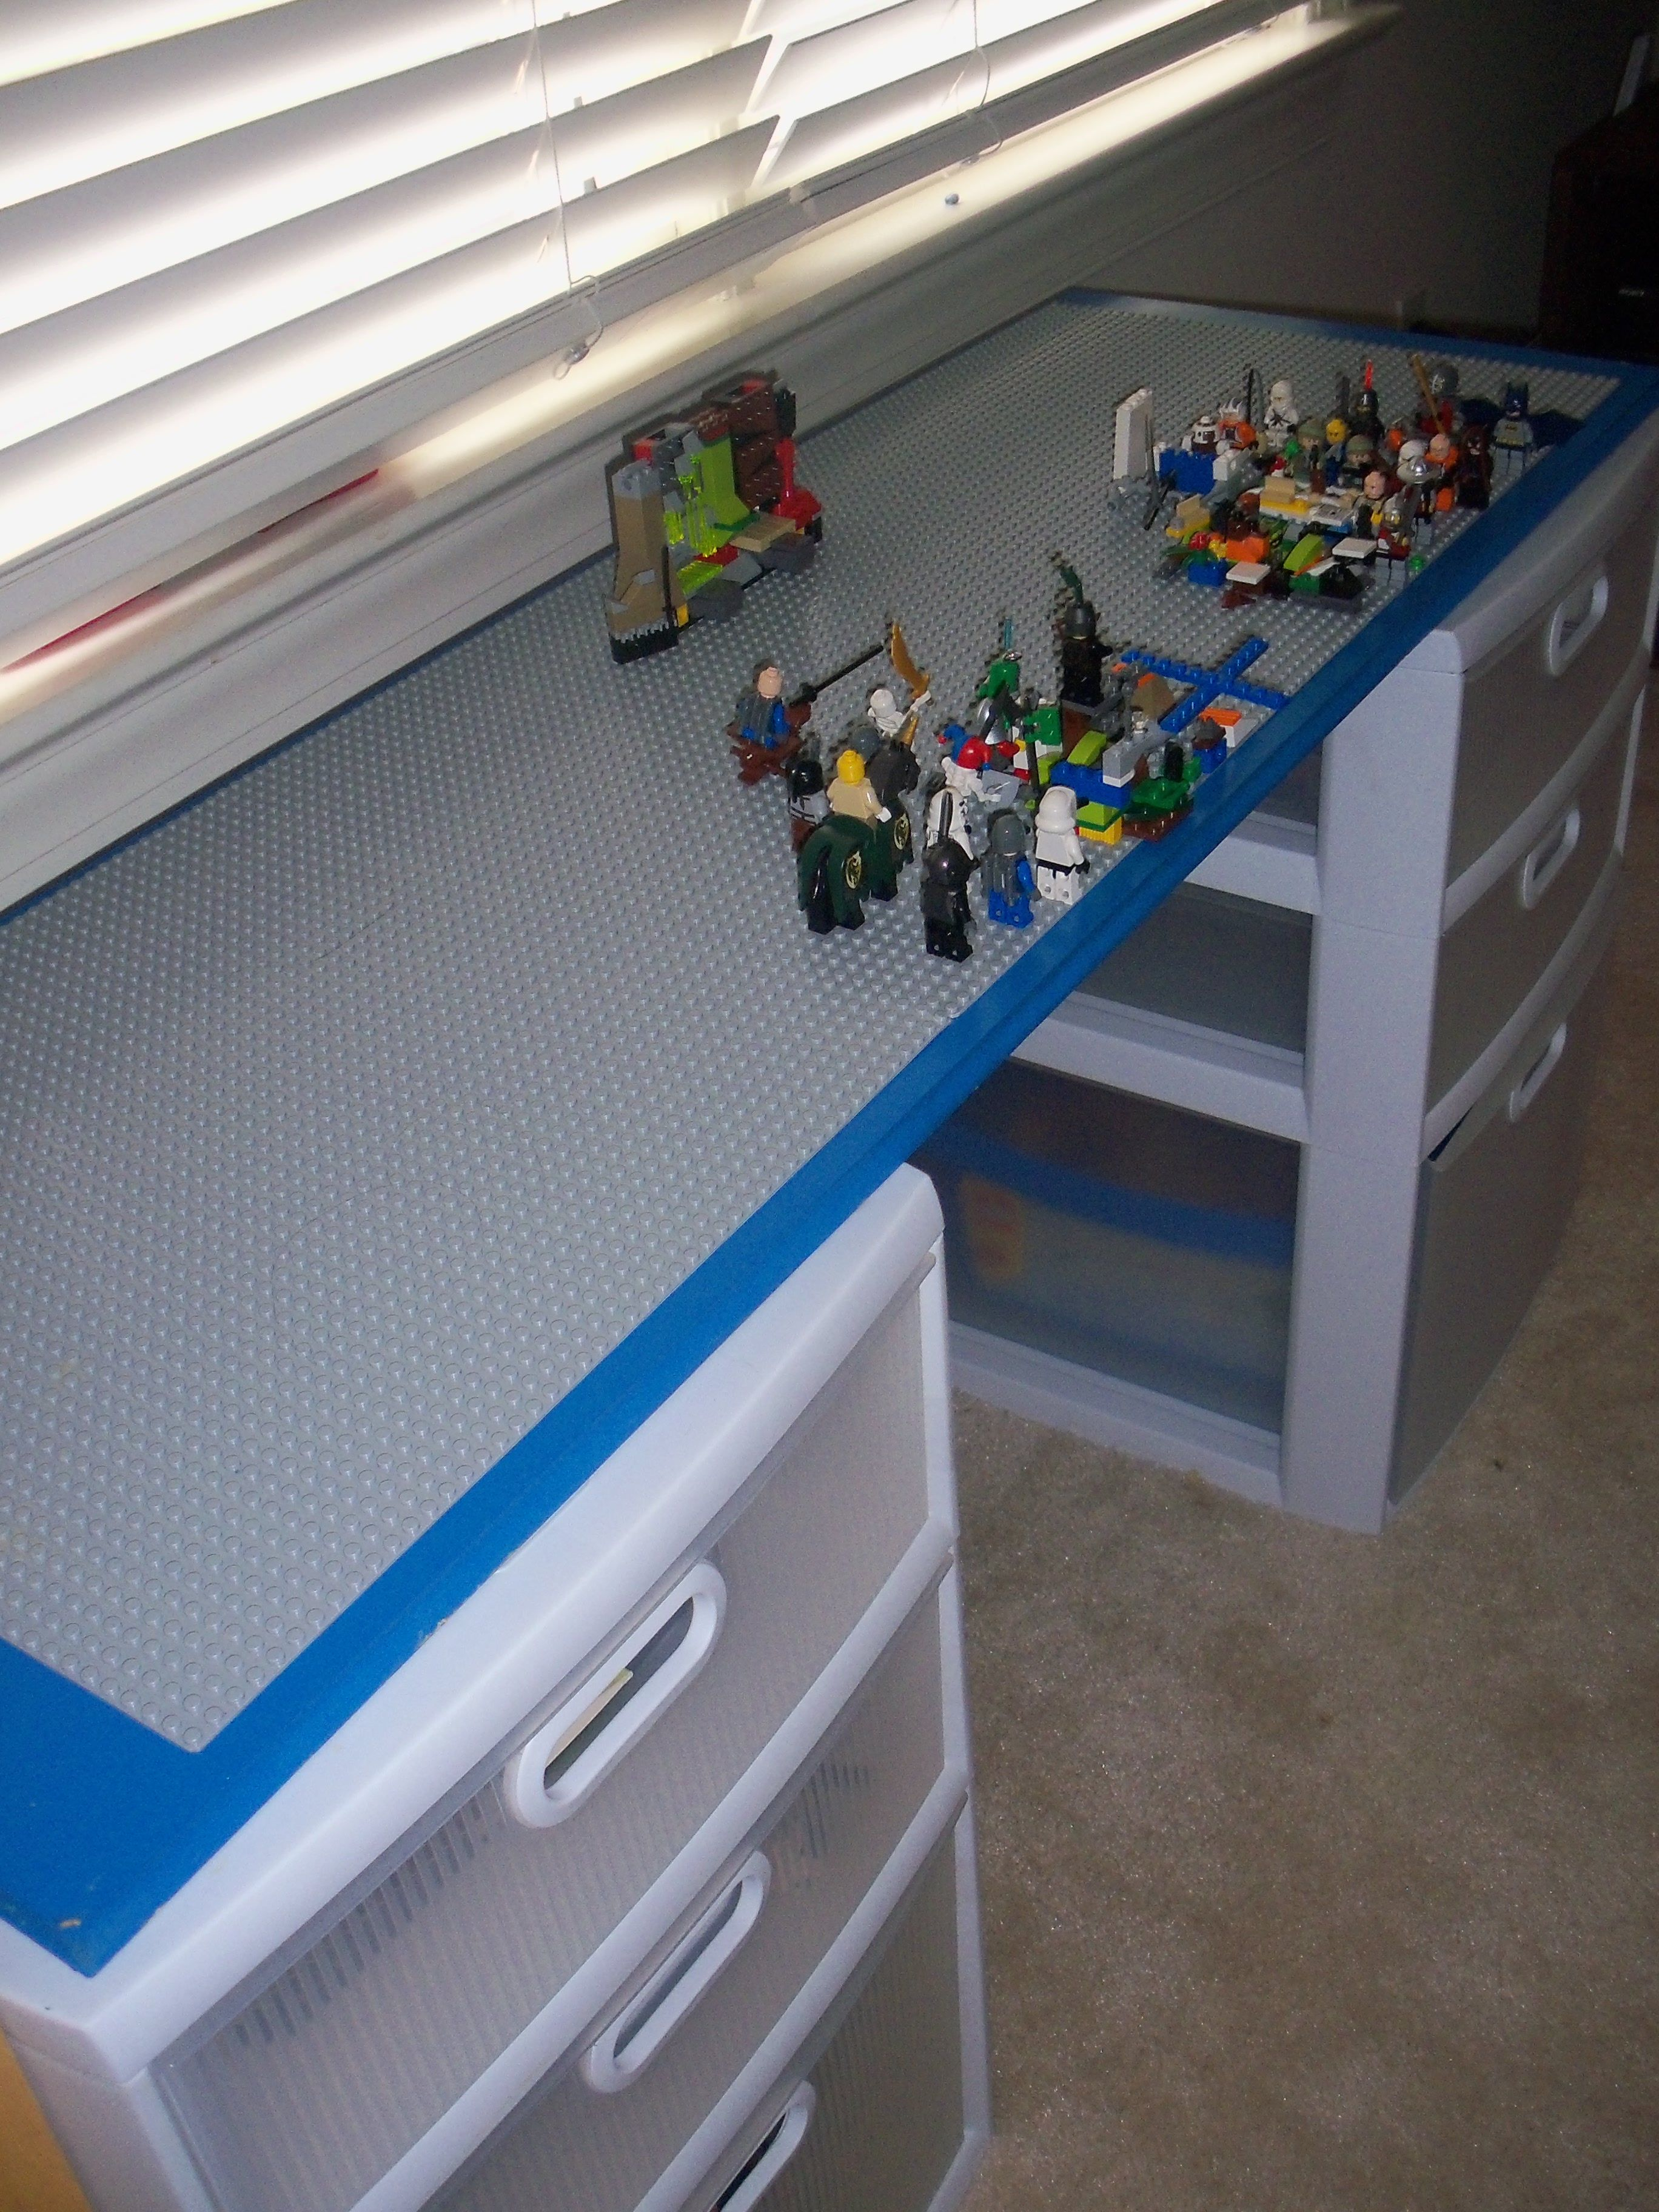 Lego Table To Help Contain The Lego Sprawl I Painted A Pre Finished Shelf And Then Topped It